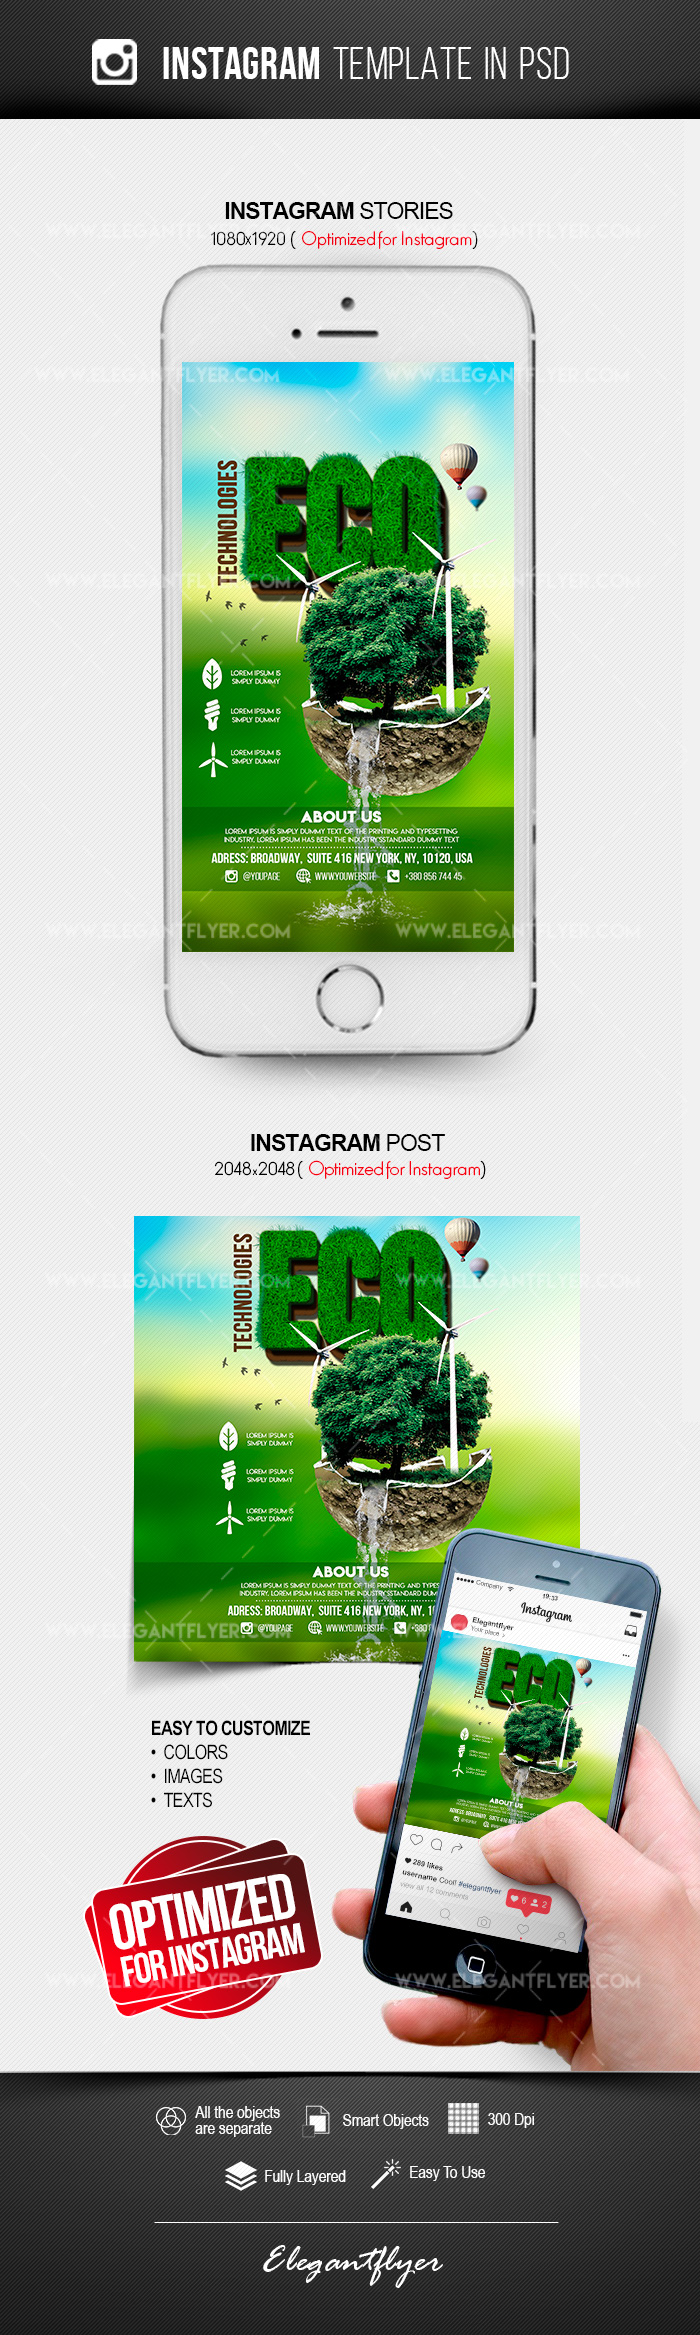 Eco Technologies – Free Instagram Stories Template in PSD + Post Templates